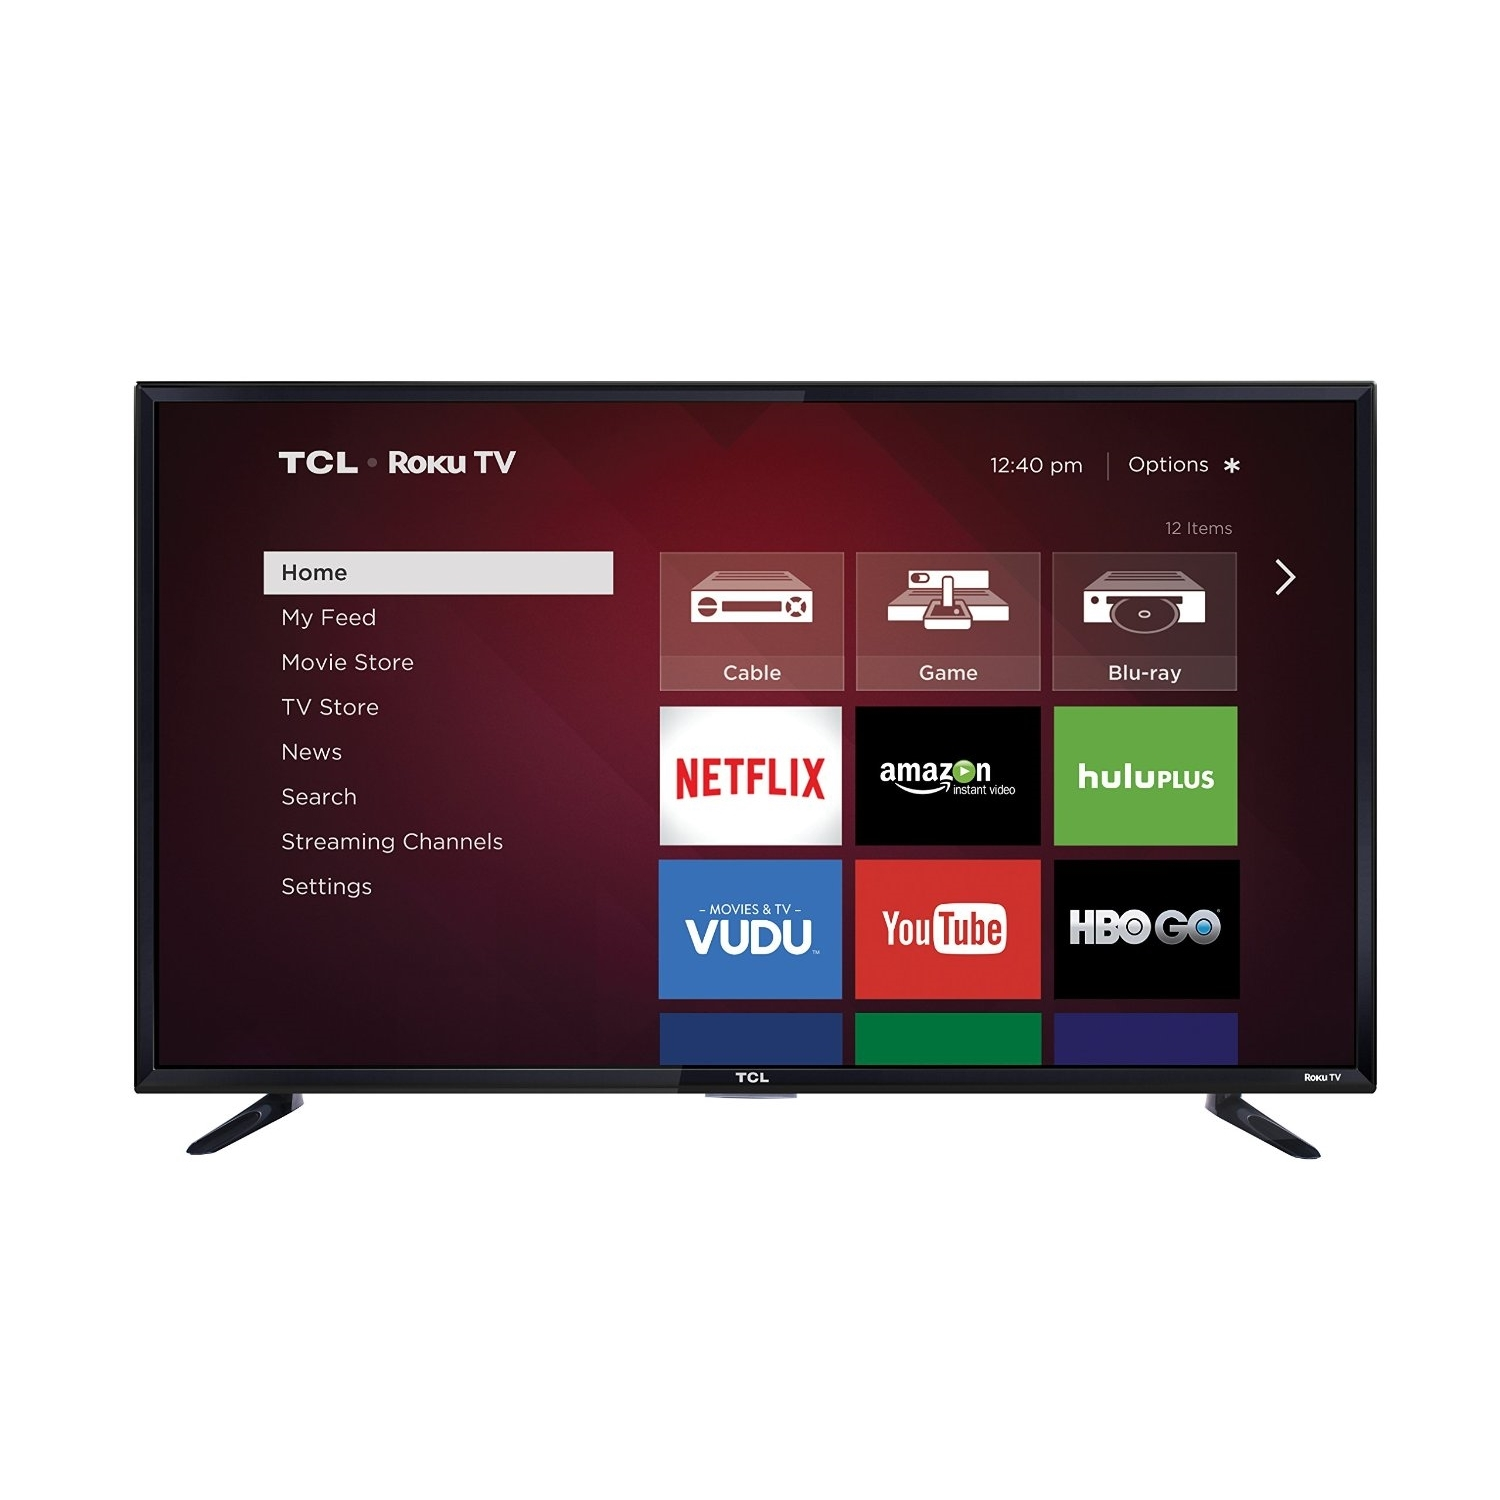 "TCL Roku 48FS3750 1080p 120Hz 48"" Smart LED TV, Black (Certified Refurbished)"